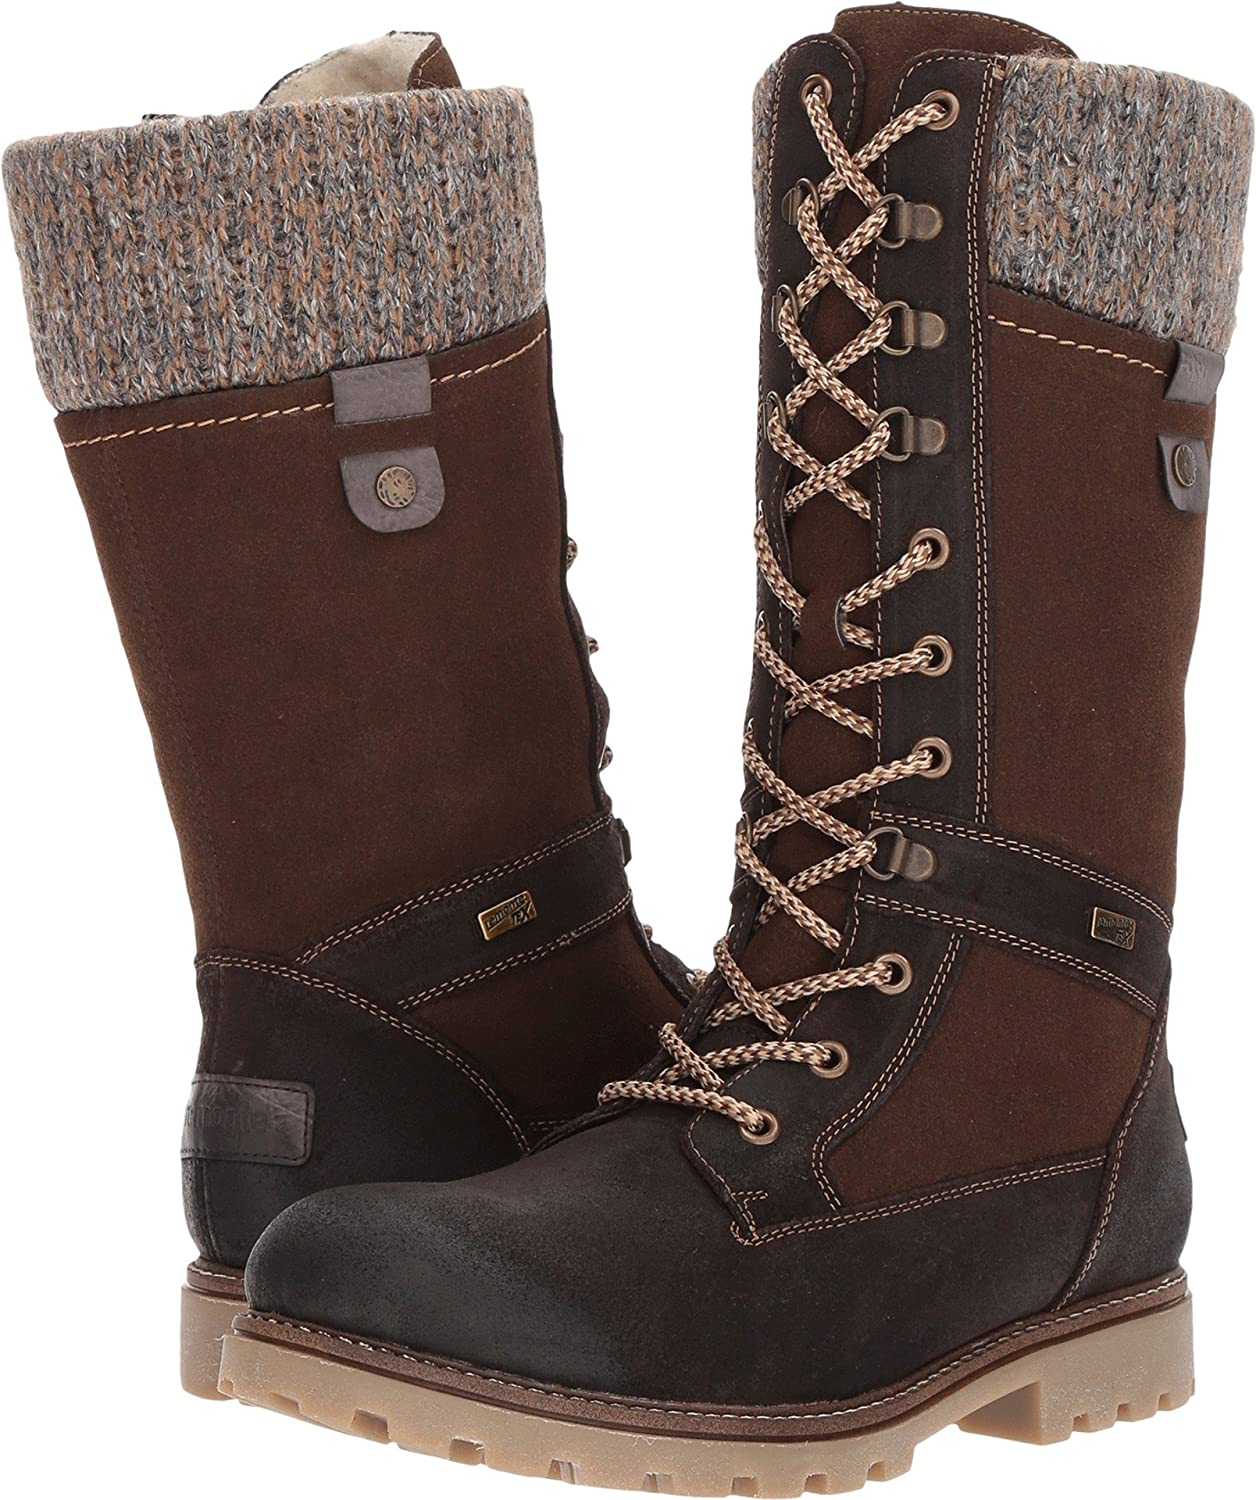 Remonte Santana 77 Hiker Boot(Women's) -Mohn/Vino/Mogano/Graphite Discount Outlet Free Shipping Cheapest Clearance With Mastercard Cheap Price Free Shipping Choice Cheap Online YhohlX